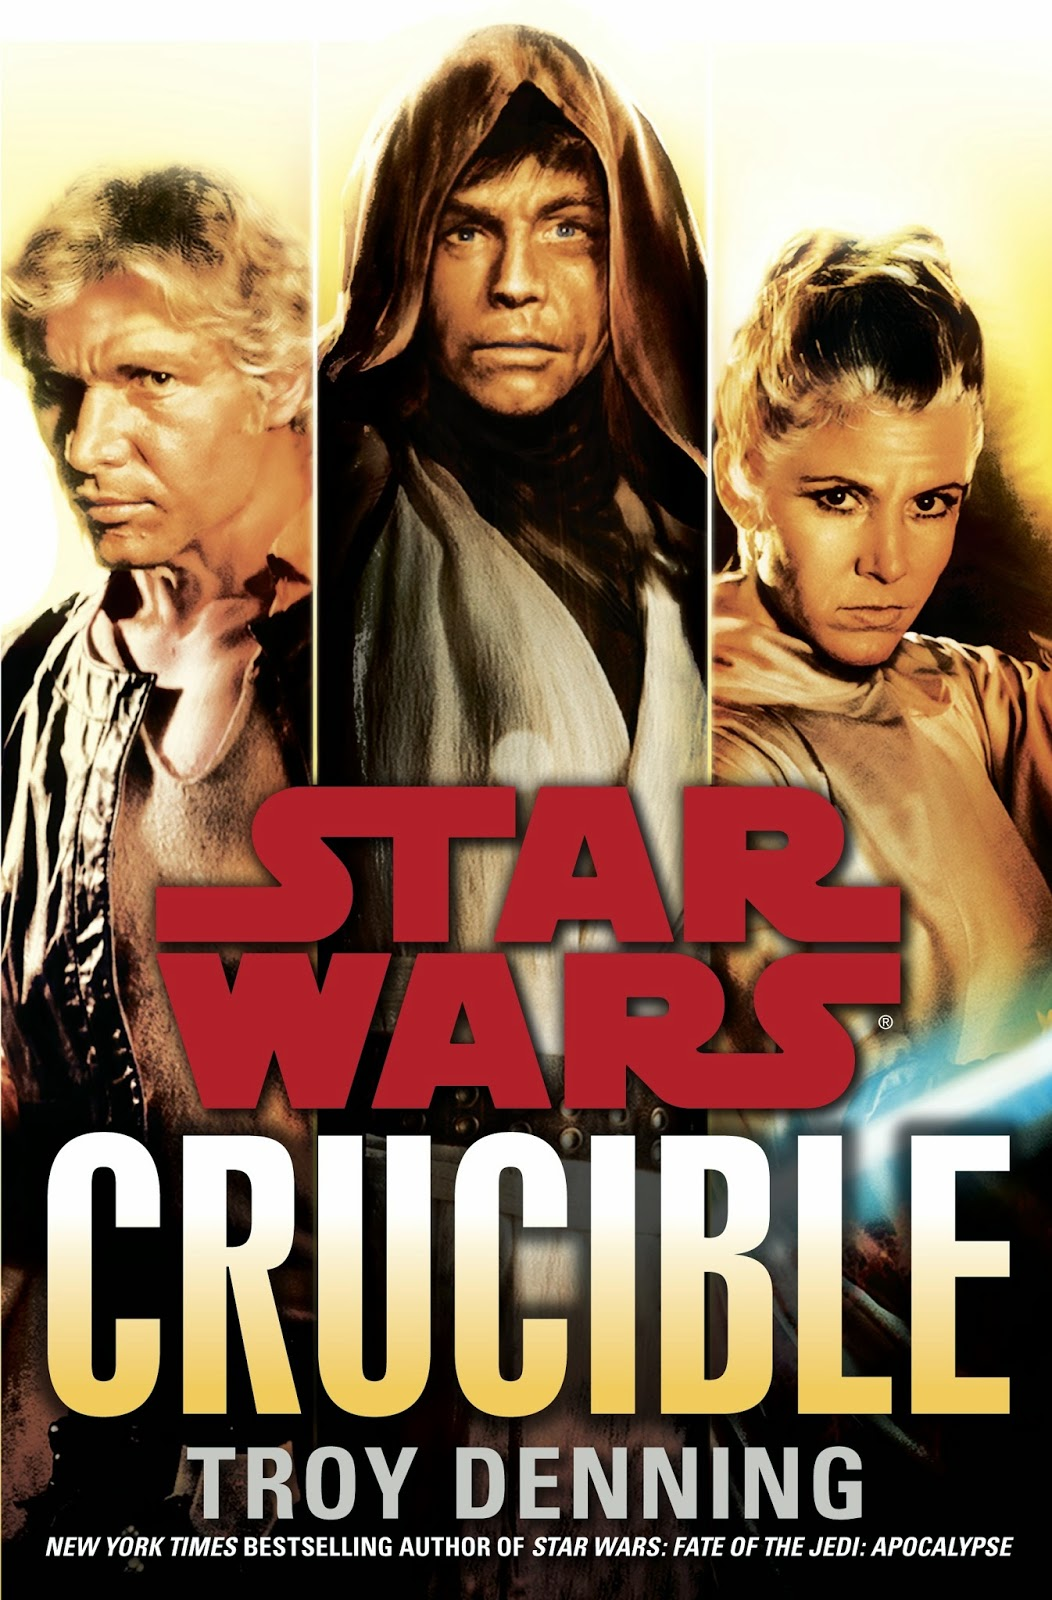 http://discover.halifaxpubliclibraries.ca/?q=title:crucible%20author:denning